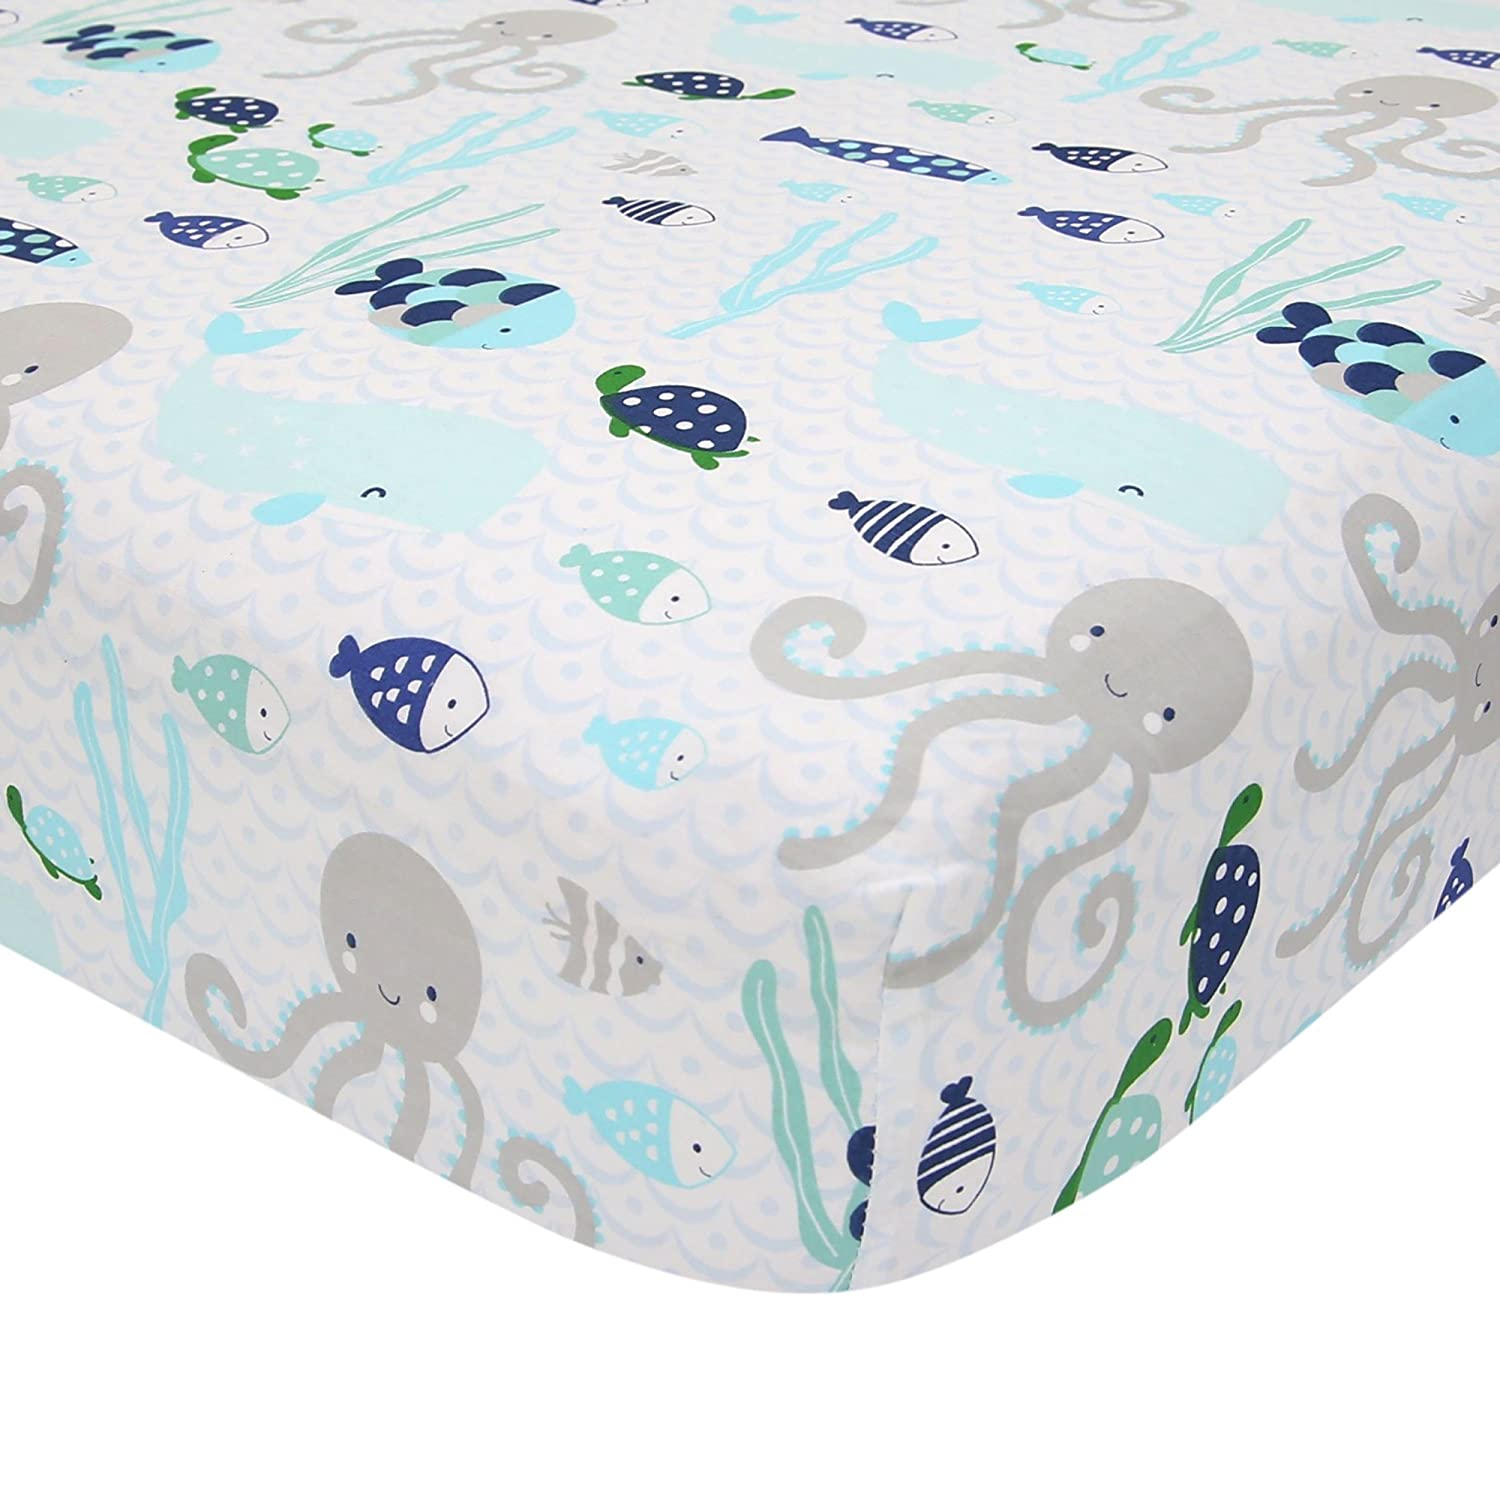 Lambs & Ivy Oceania 100% Cotton Fitted Crib Sheet - White with Blue Nautical/Aquatic Fish and Octopus 81IH3rJ9DEL